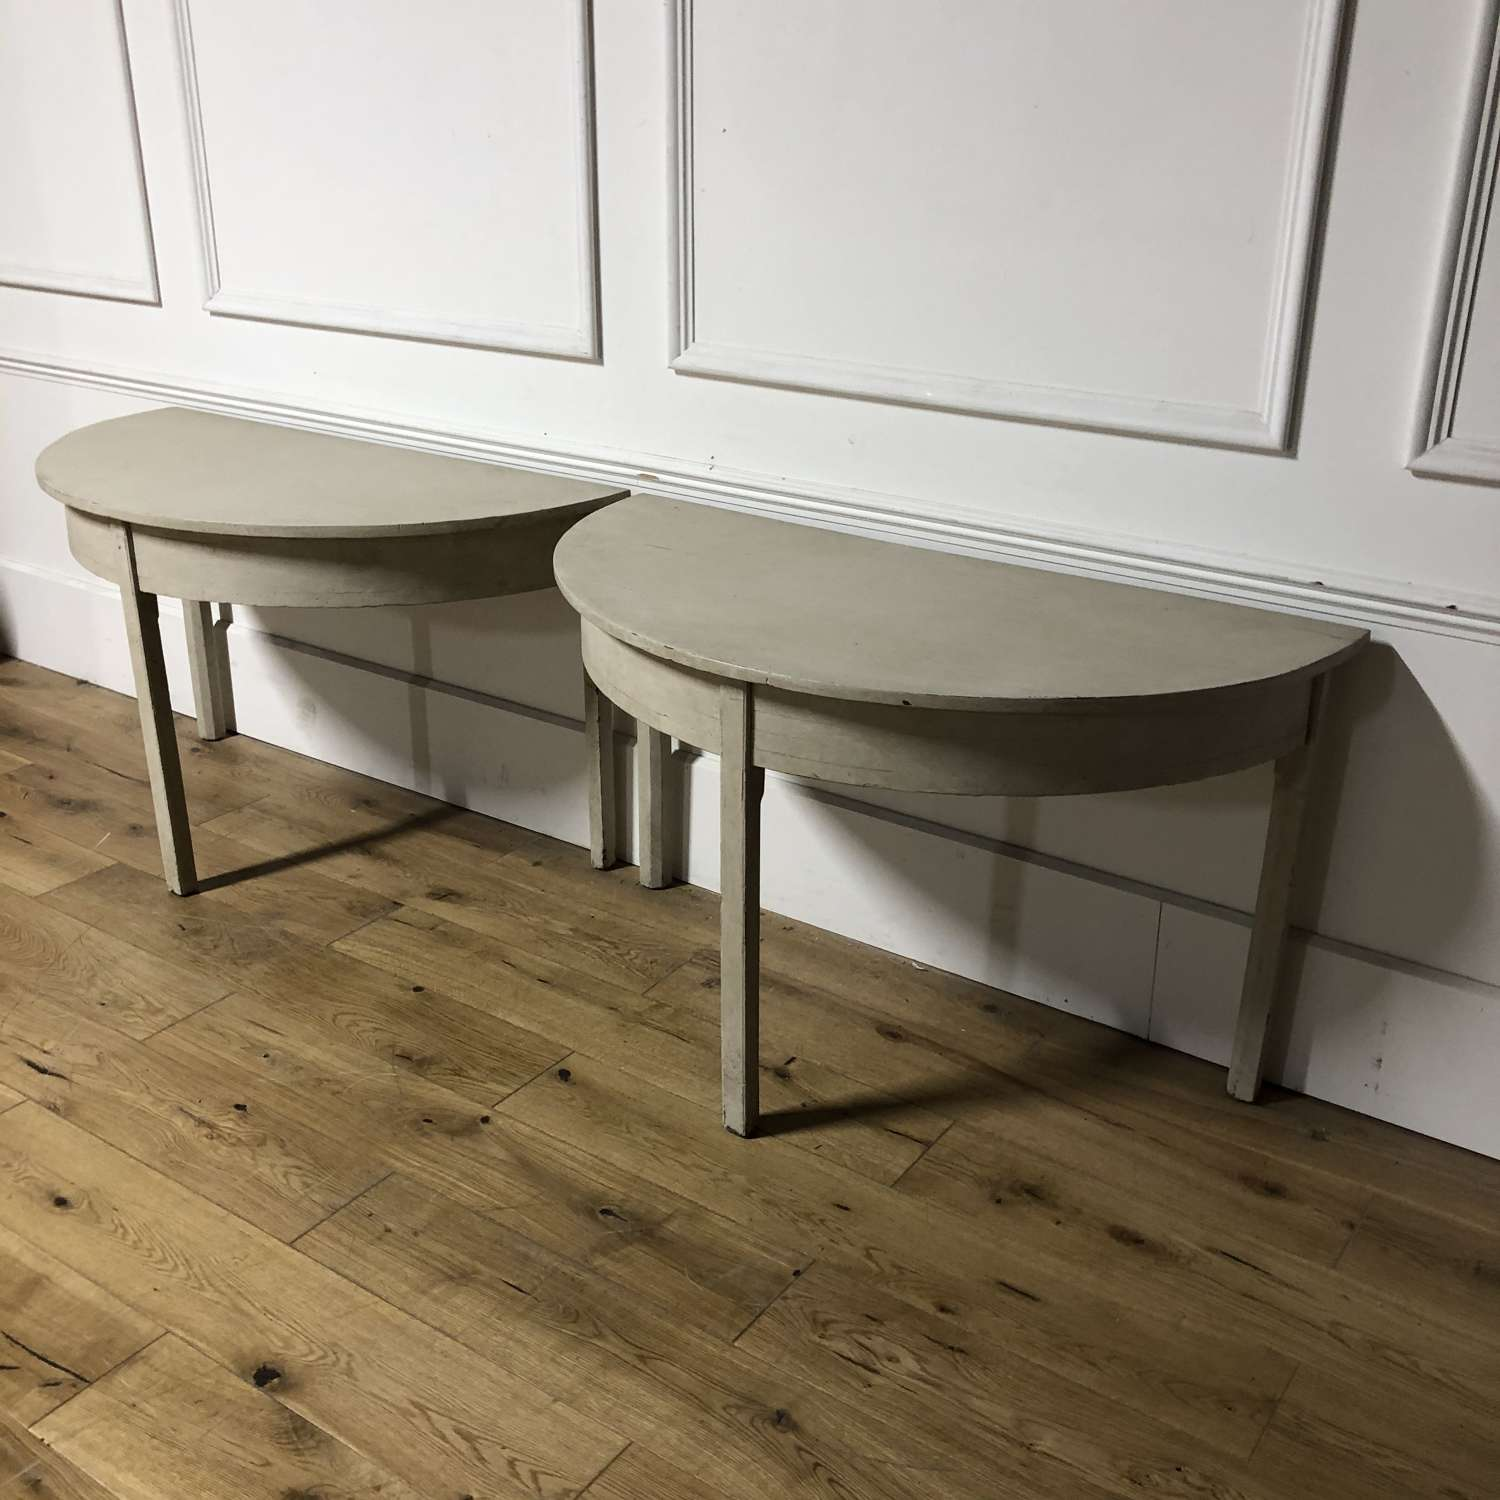 A Pair of Demi Lune Tables